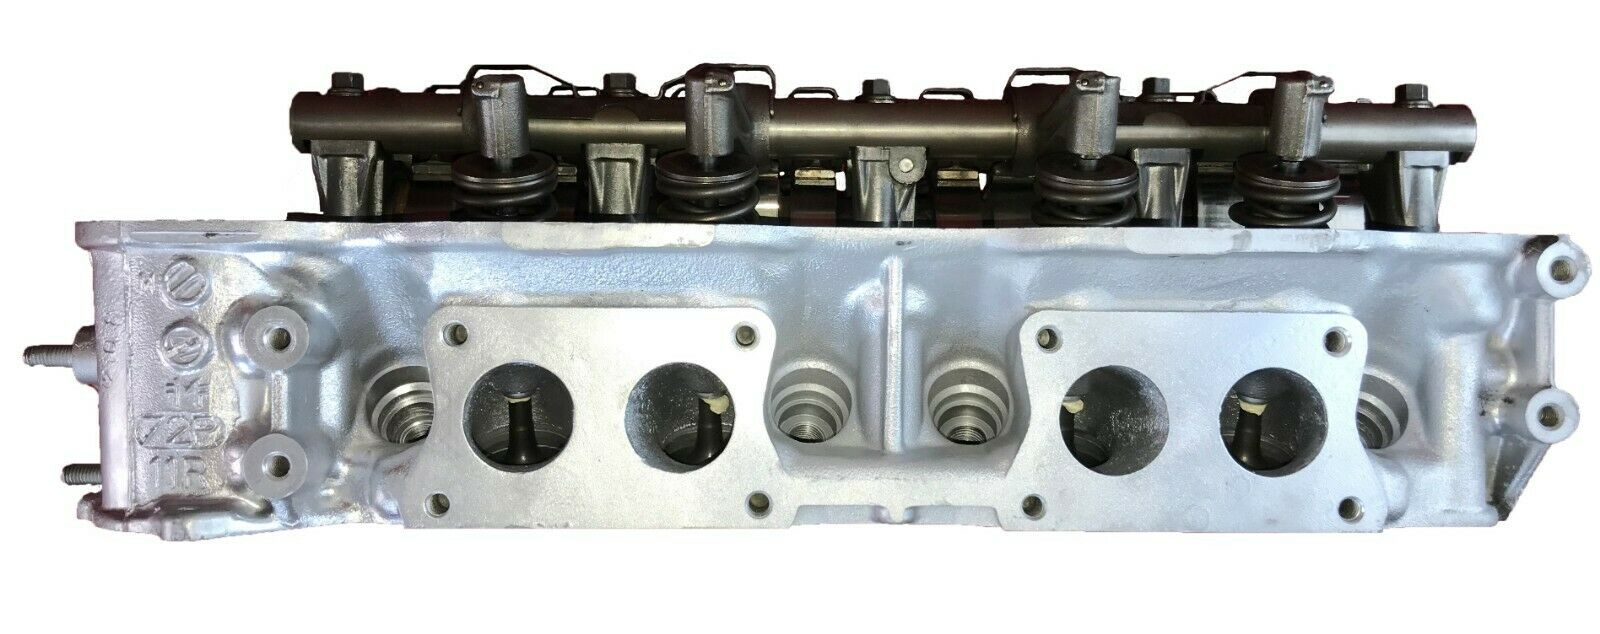 Used Nissan D21 Cylinder Heads and Parts for Sale